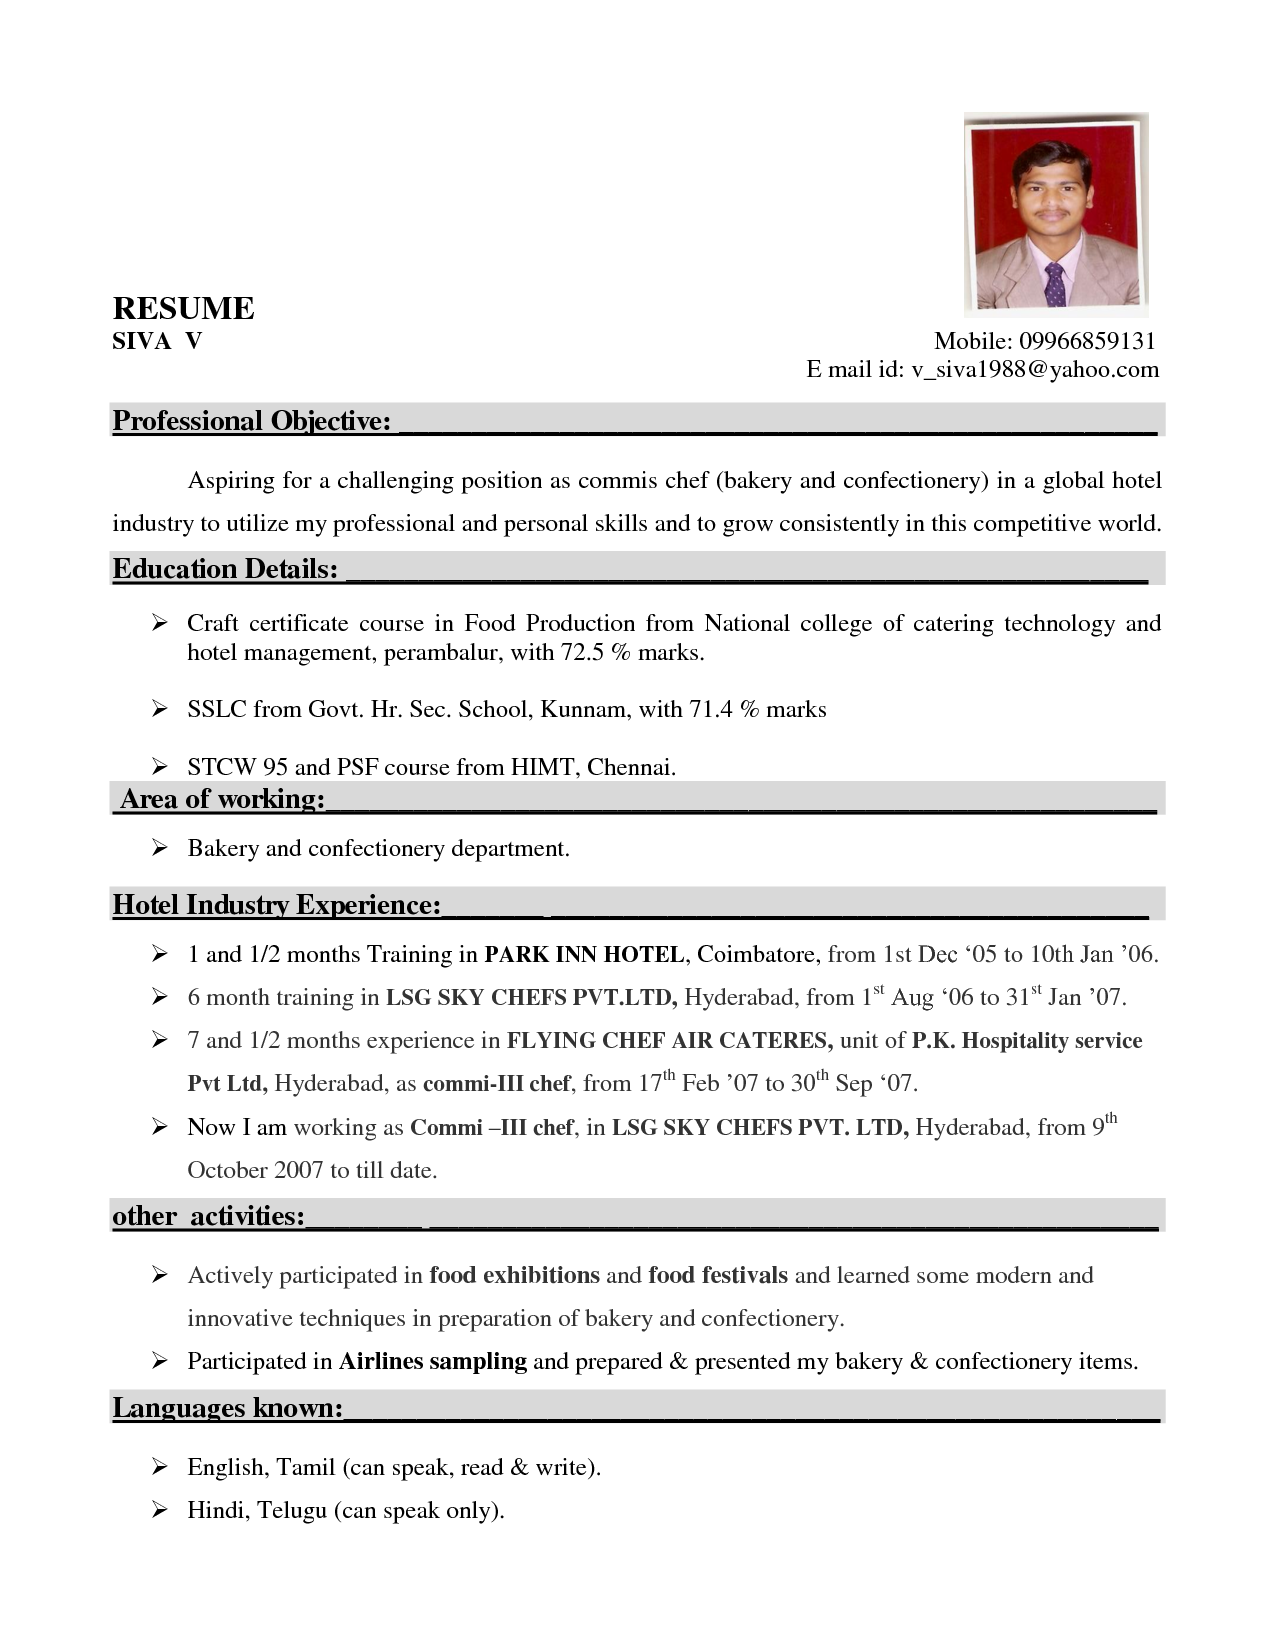 Nice Resume Sample For Hotel Chef     Yahoo Image Search Results Pertaining To Hotel Resume Objective